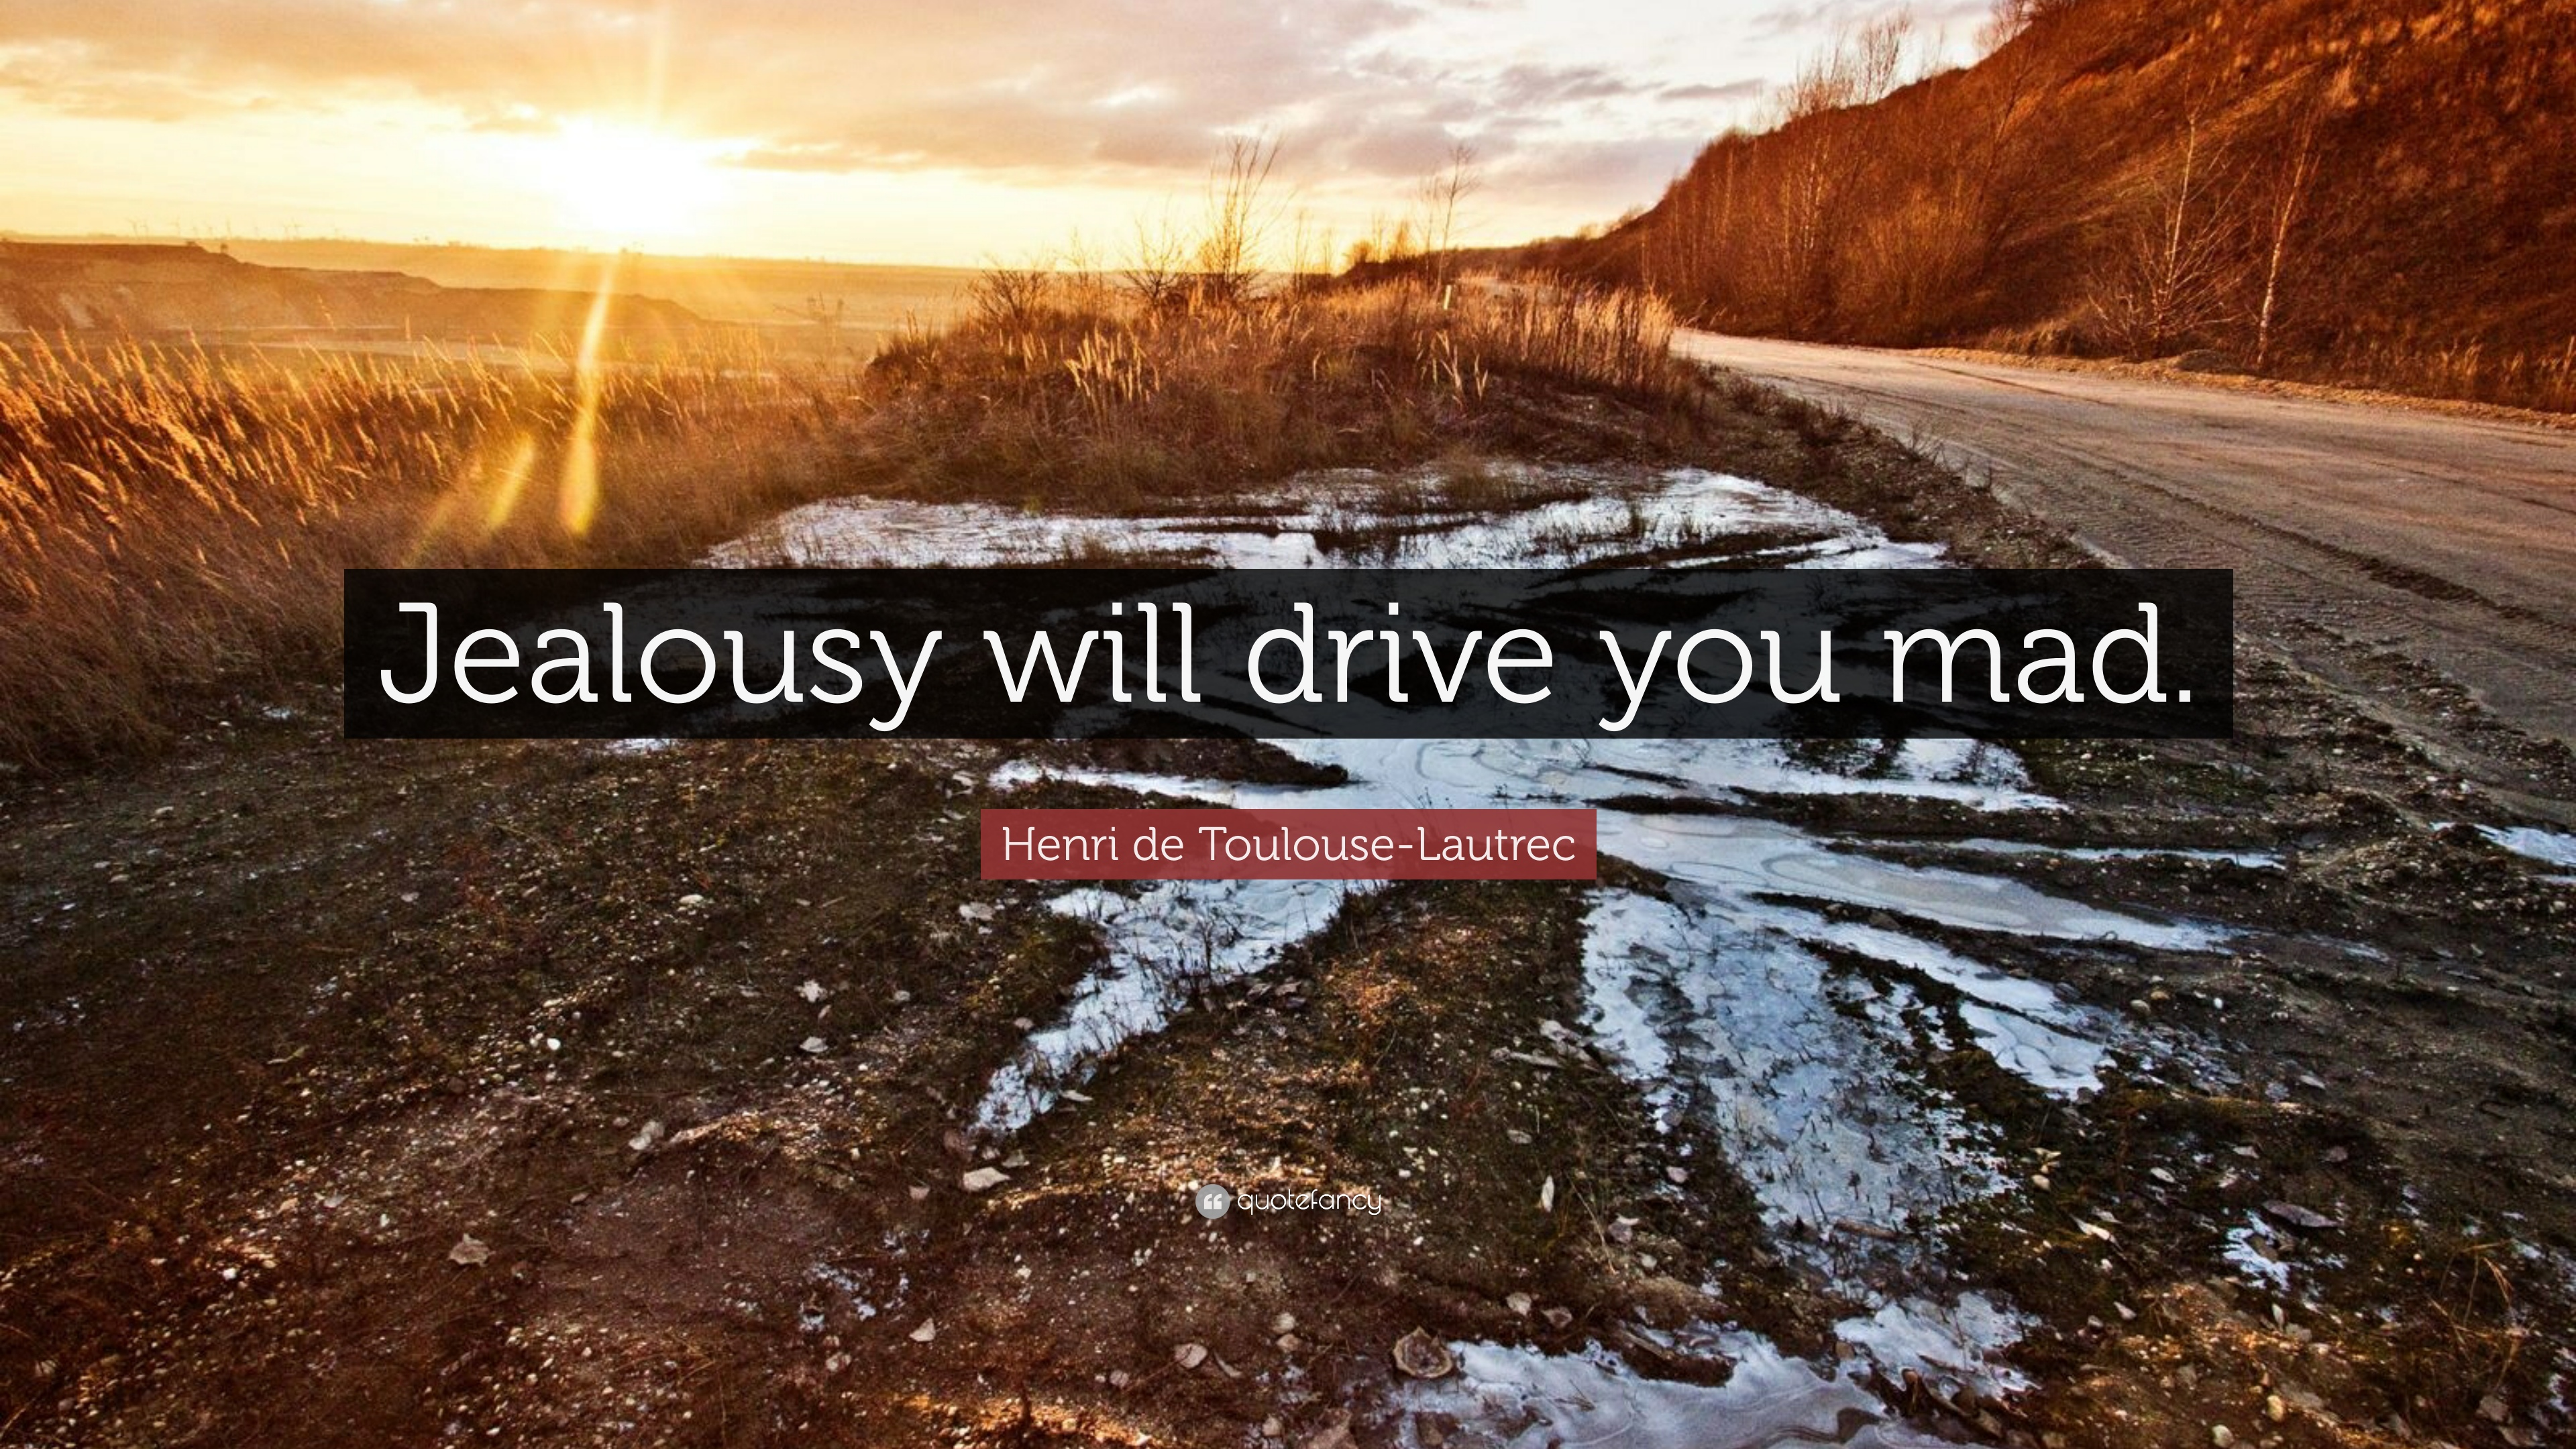 Drive Toulouse Henri De Toulouse Lautrec Quote Jealousy Will Drive You Mad 7